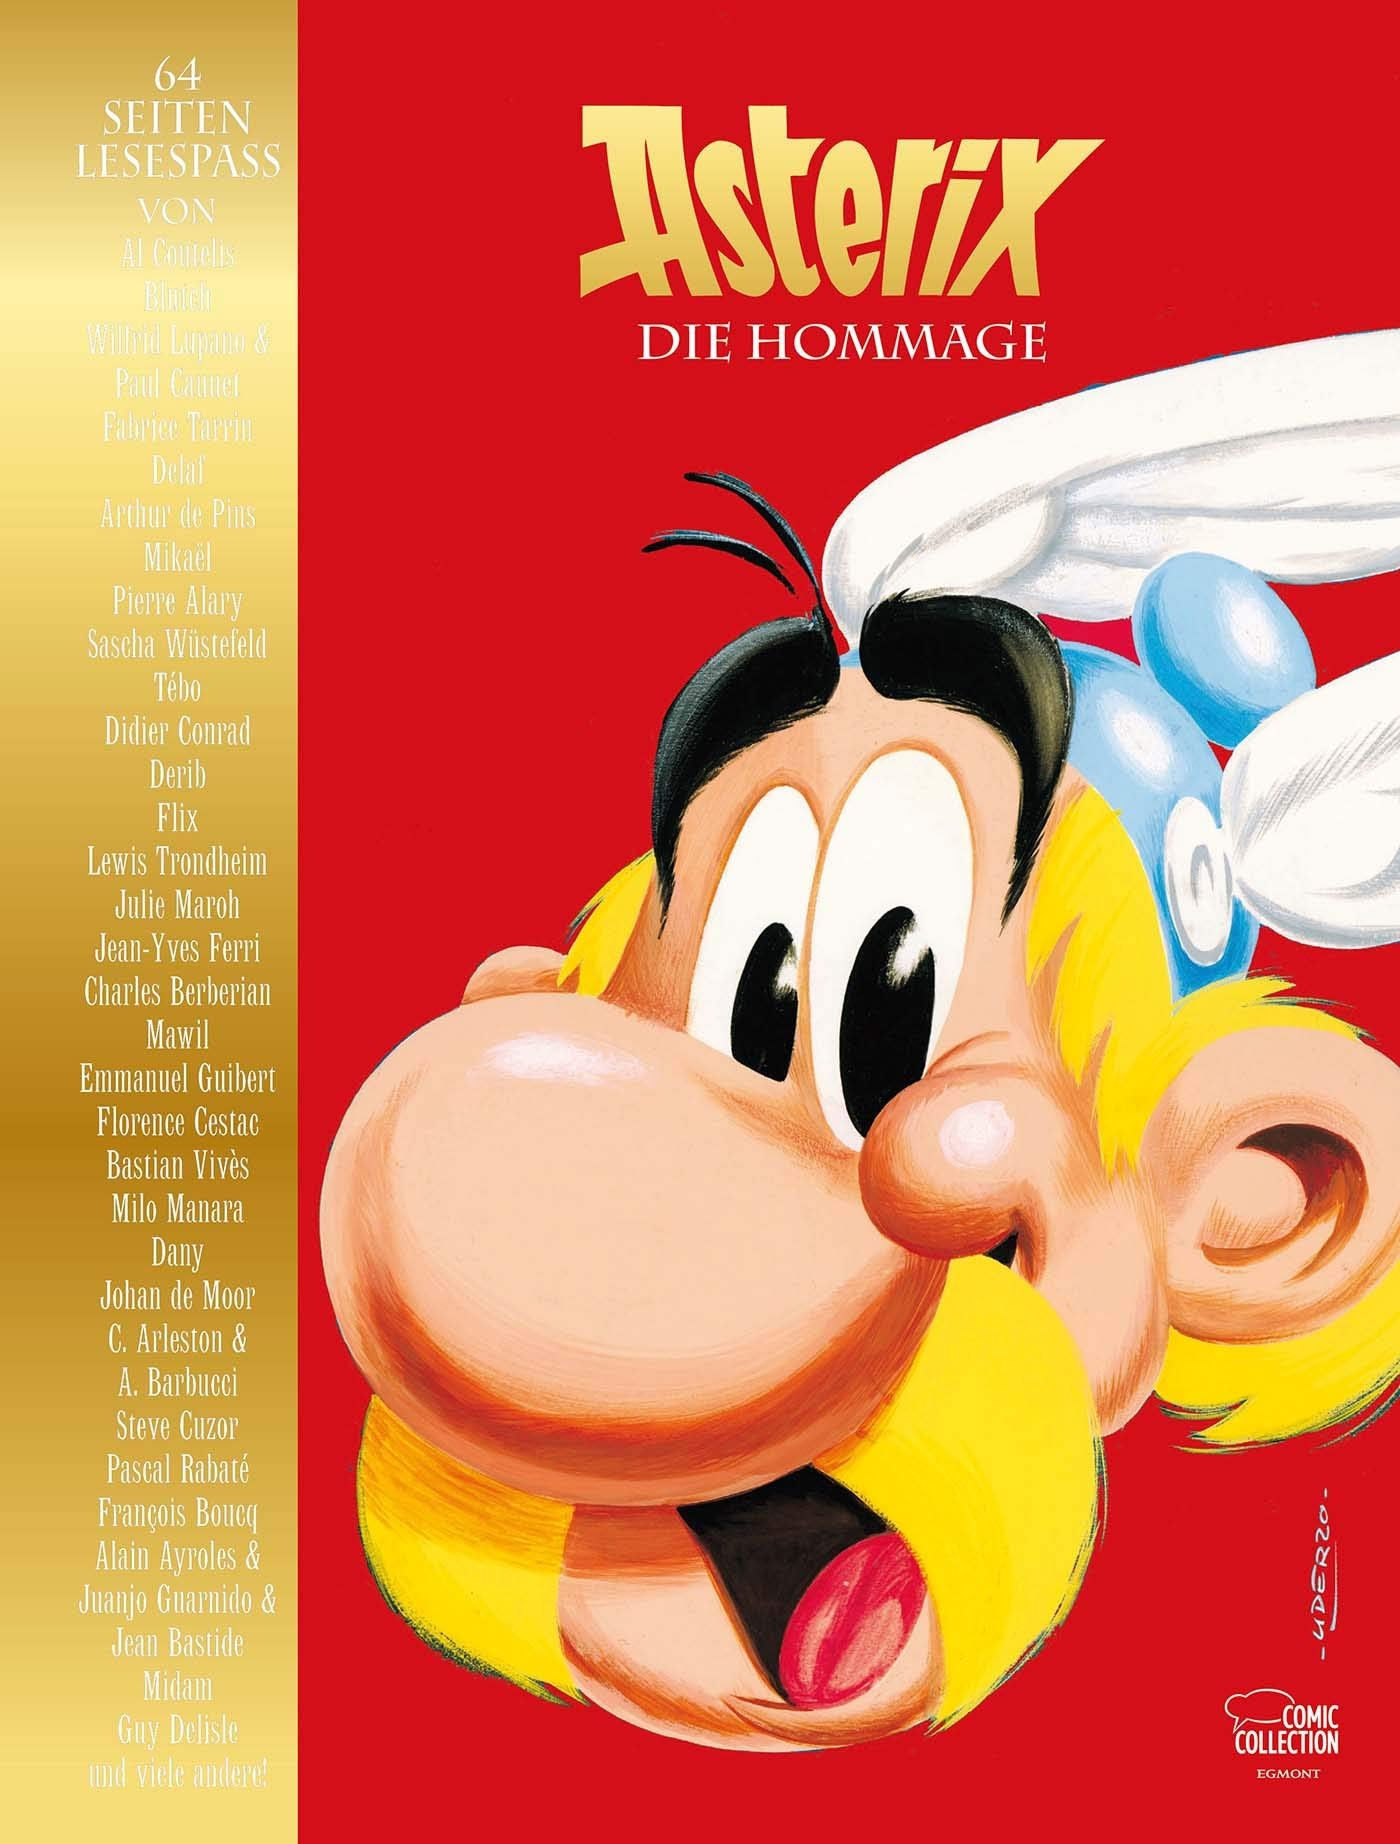 comic 10 19 asterix hommage 19